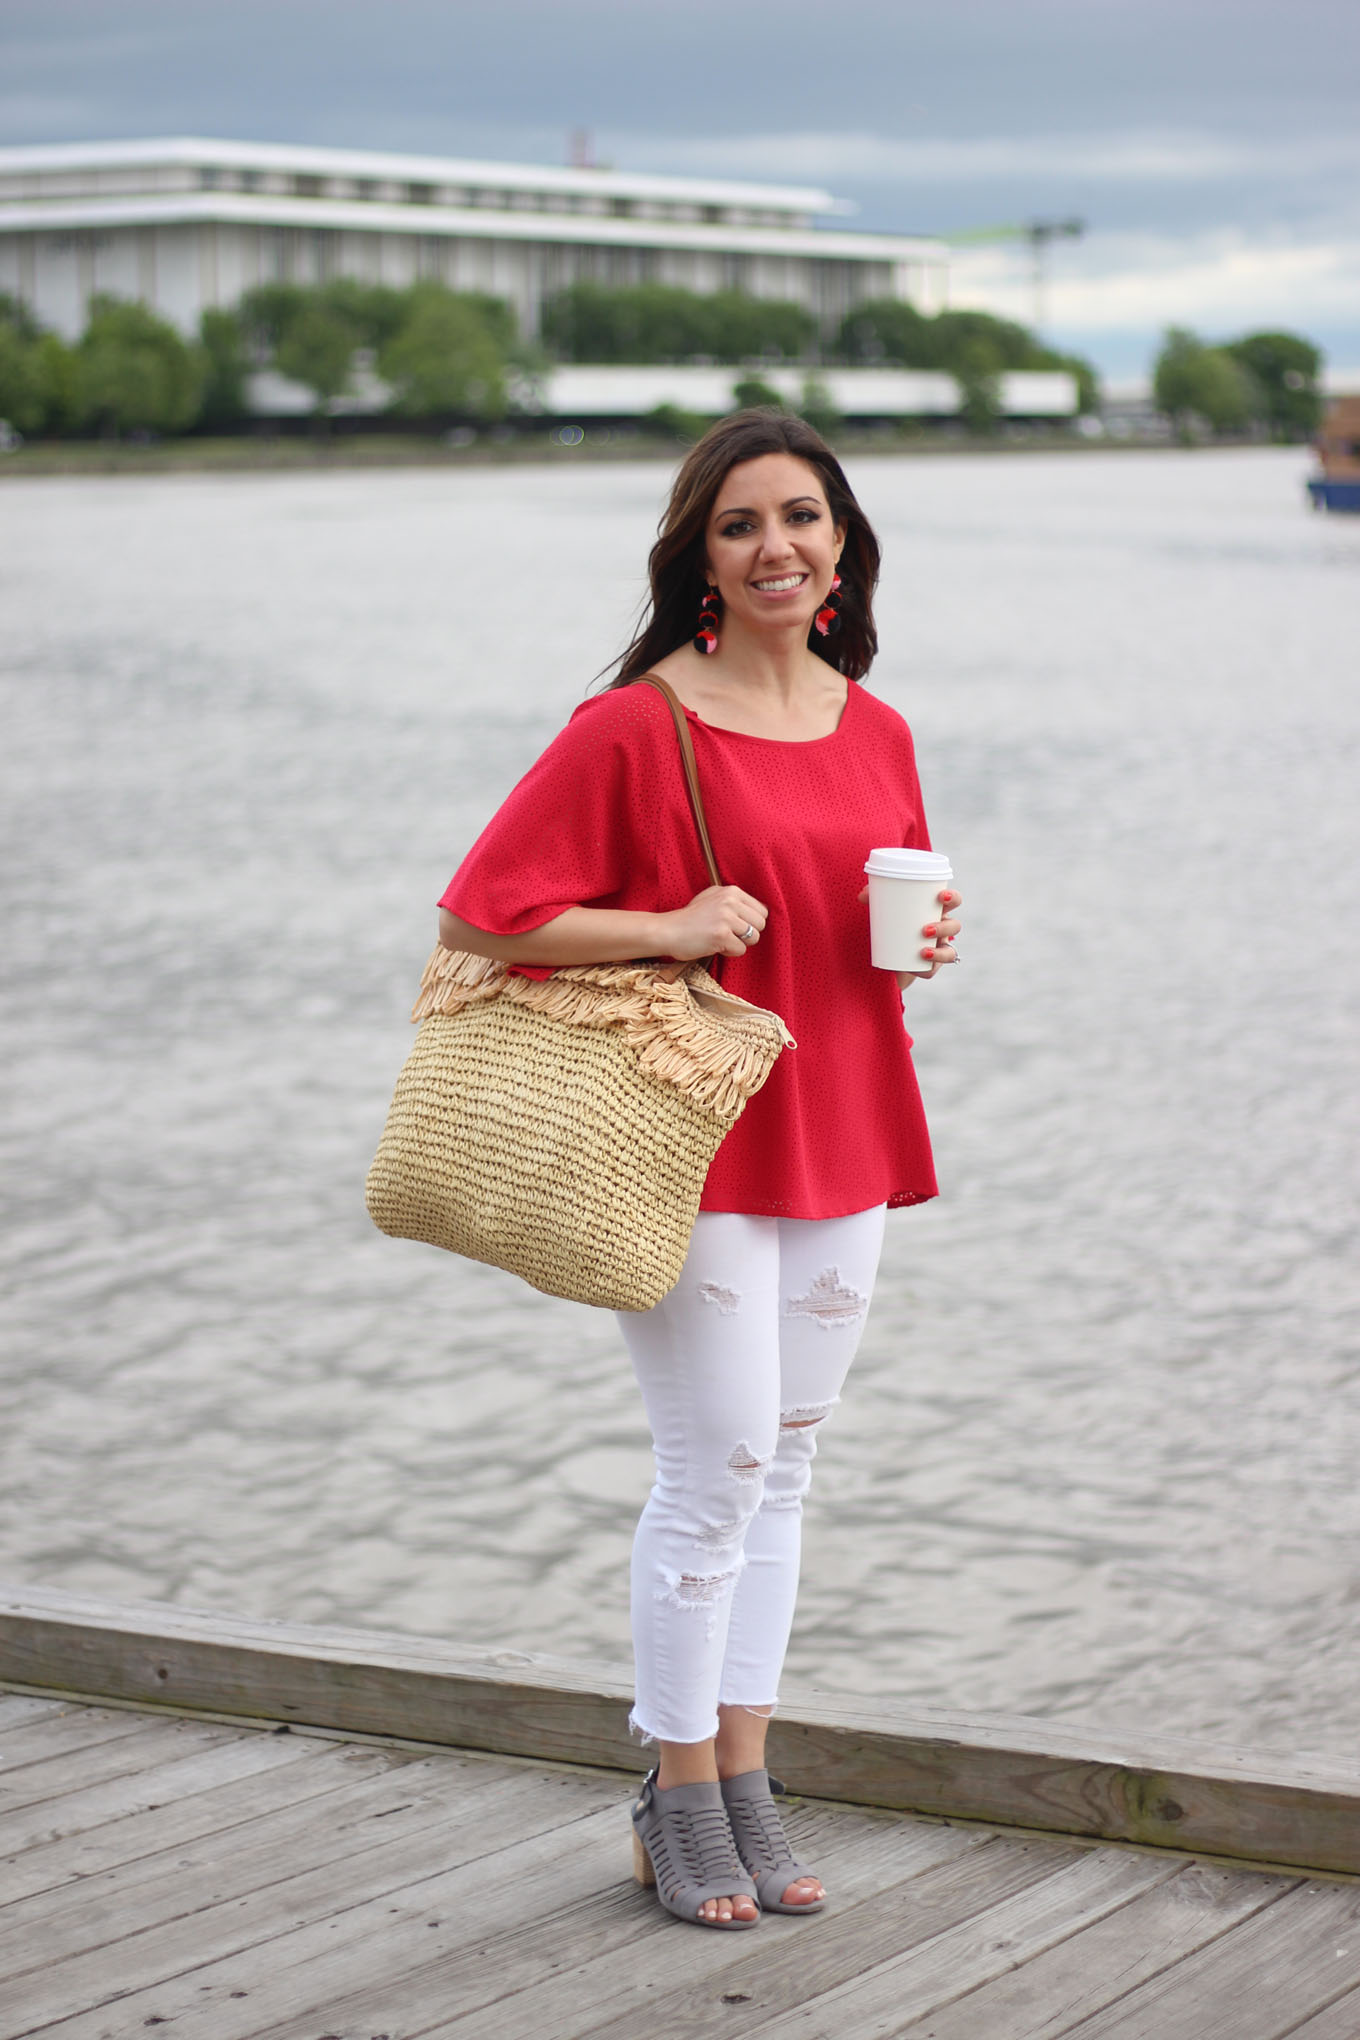 Lifestyle blogger Roxanne of Glass of Glam wearing a Cuddy Studios top, Baublebar earrings, and Old Navy Denim